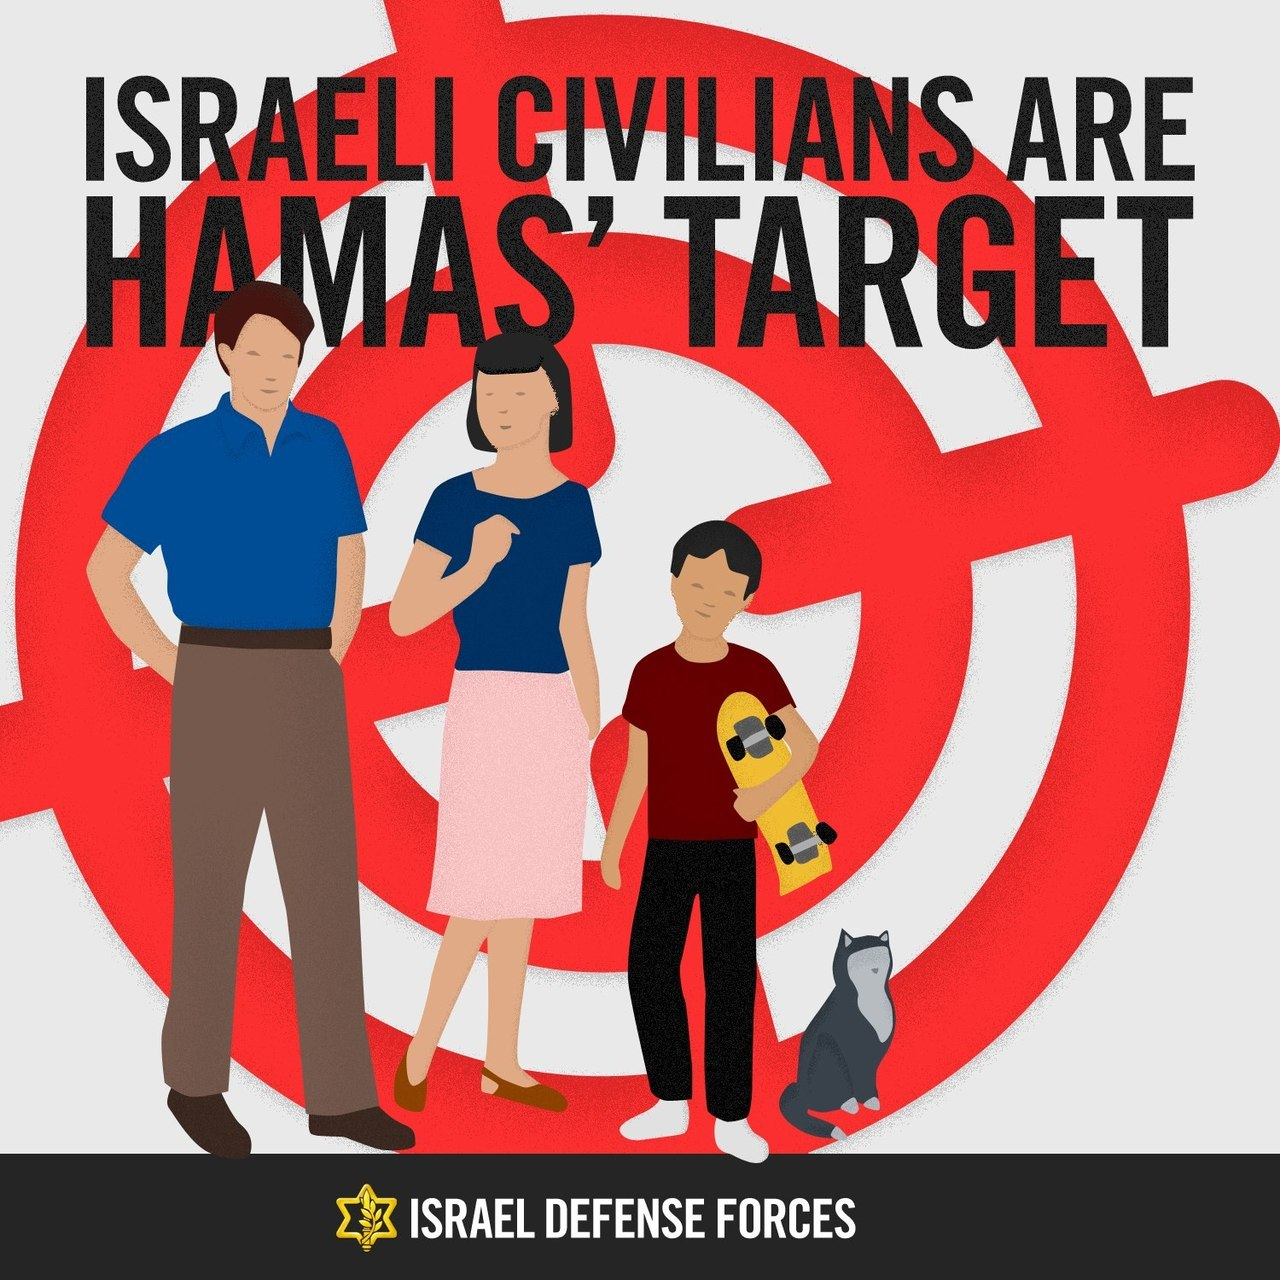 This is how Hamas sees Israel.